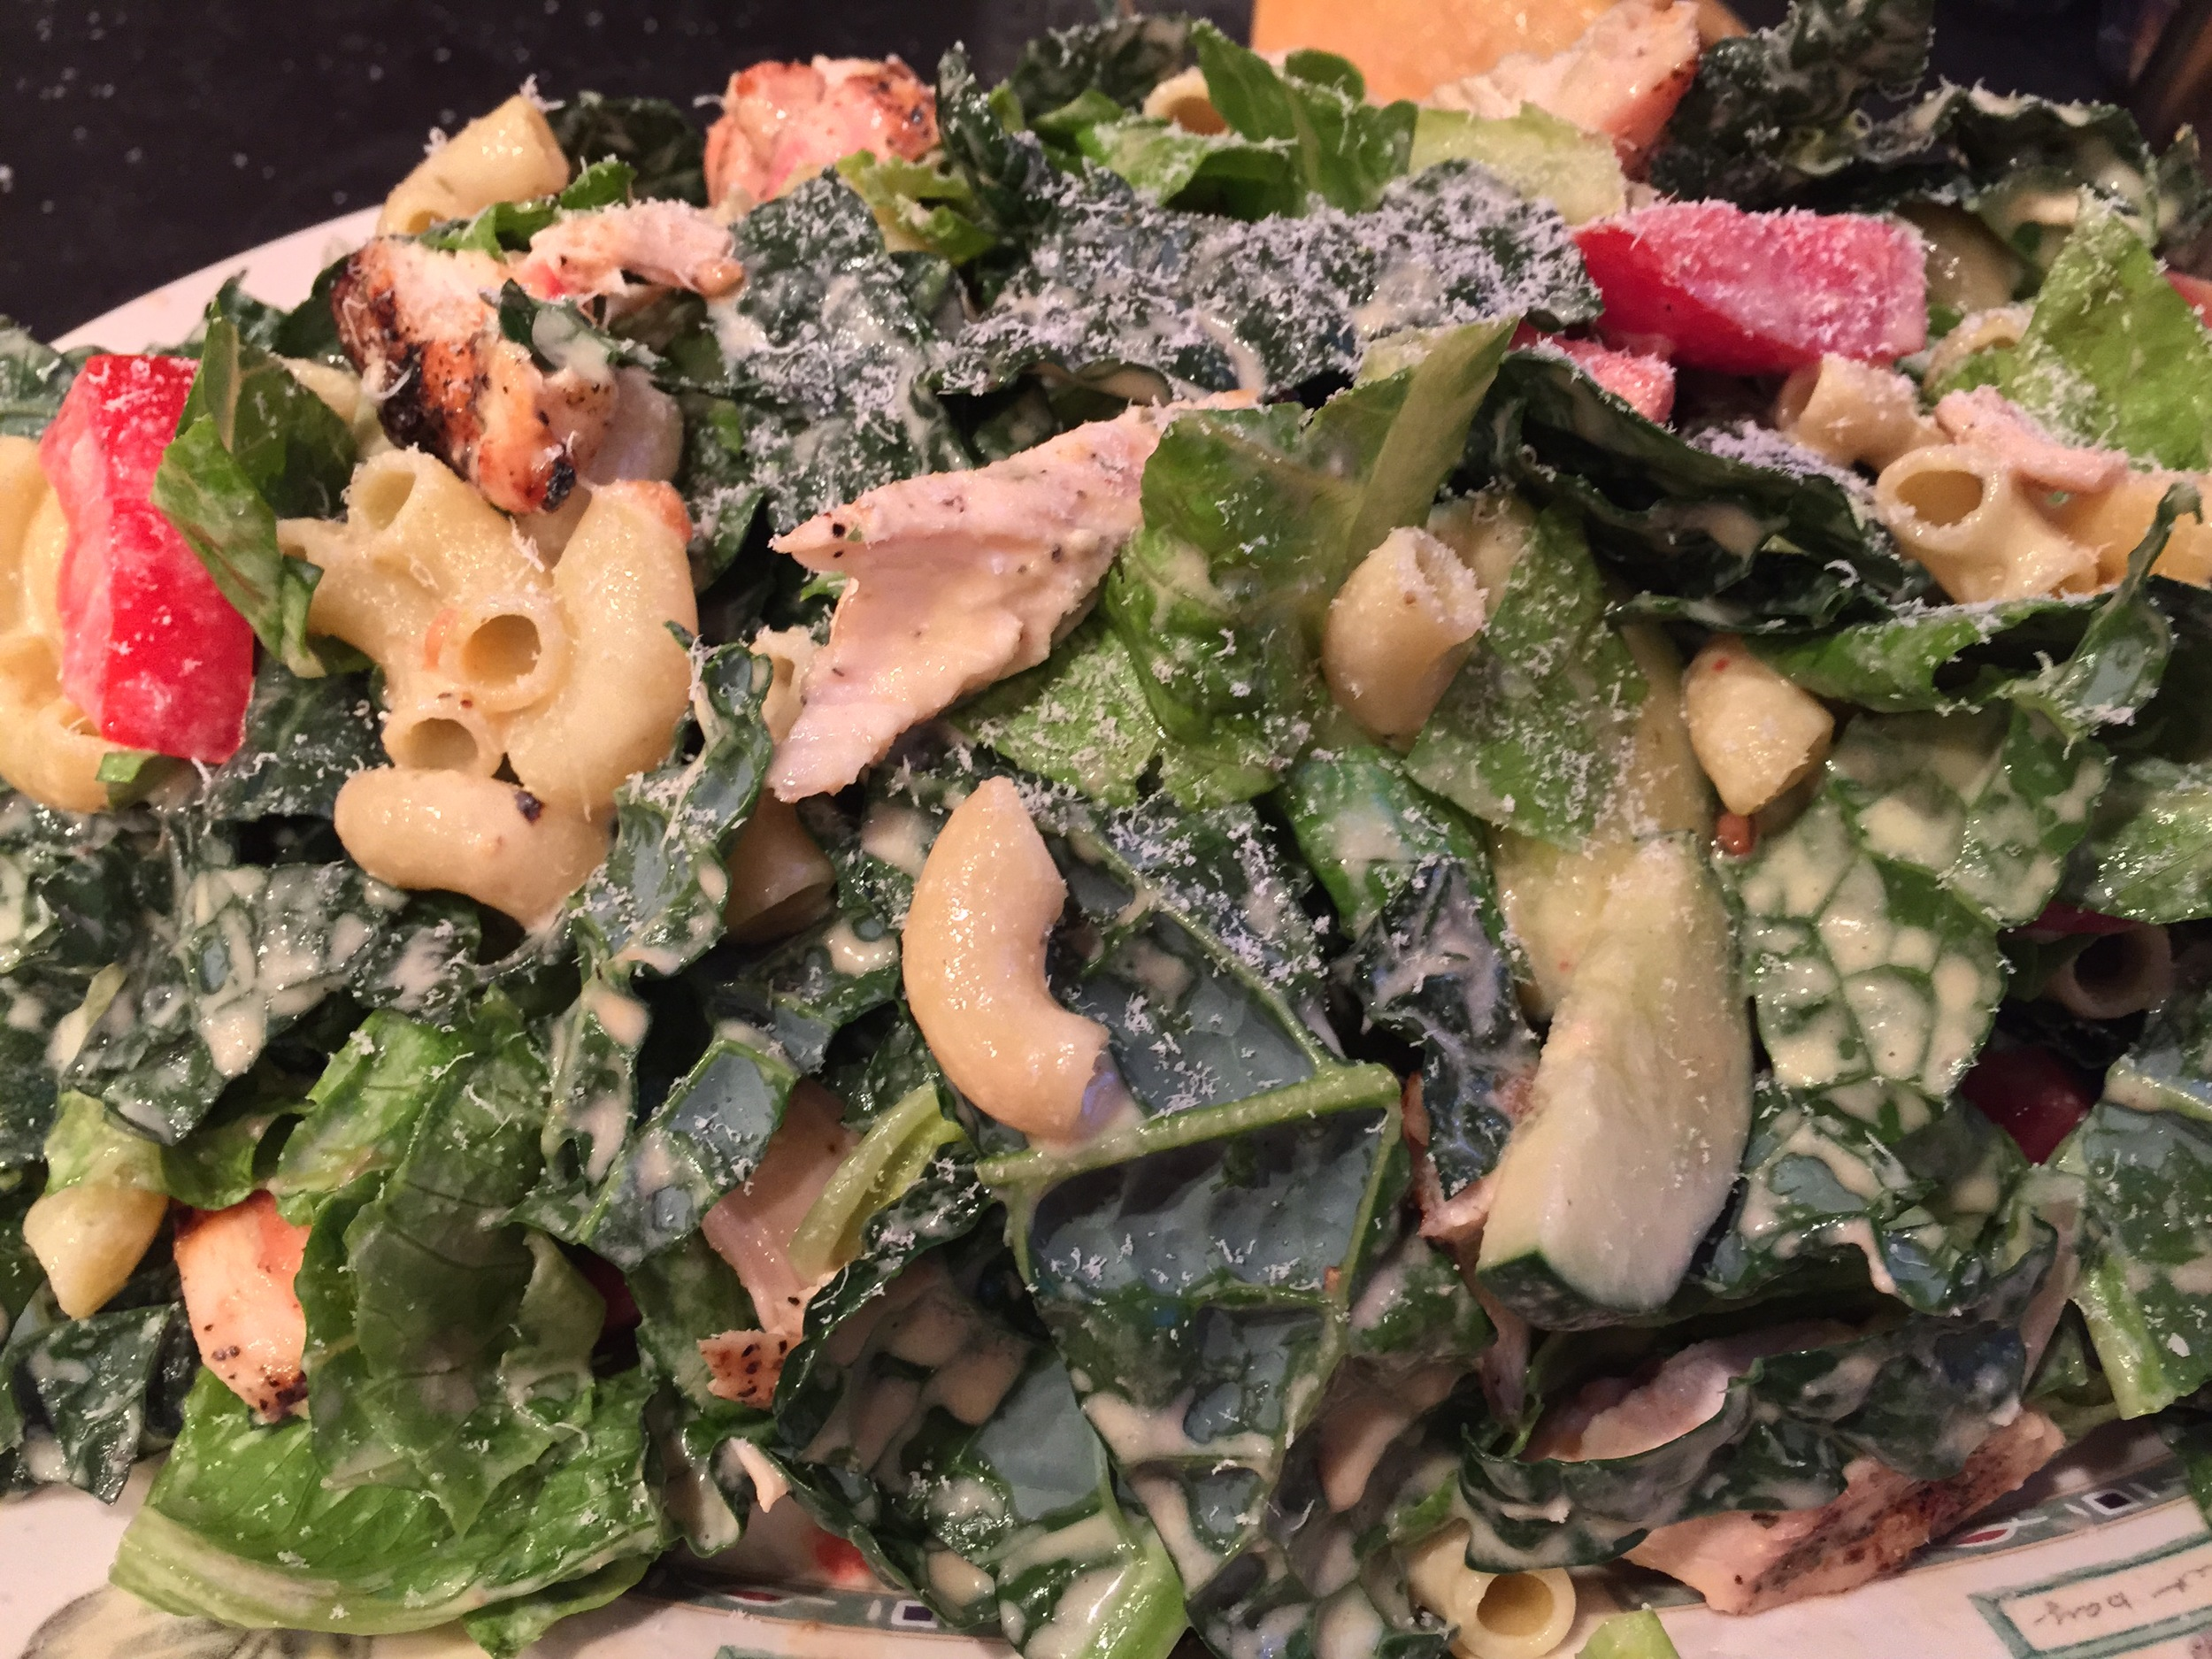 A mountain of chicken caesar salad, sans anchovy